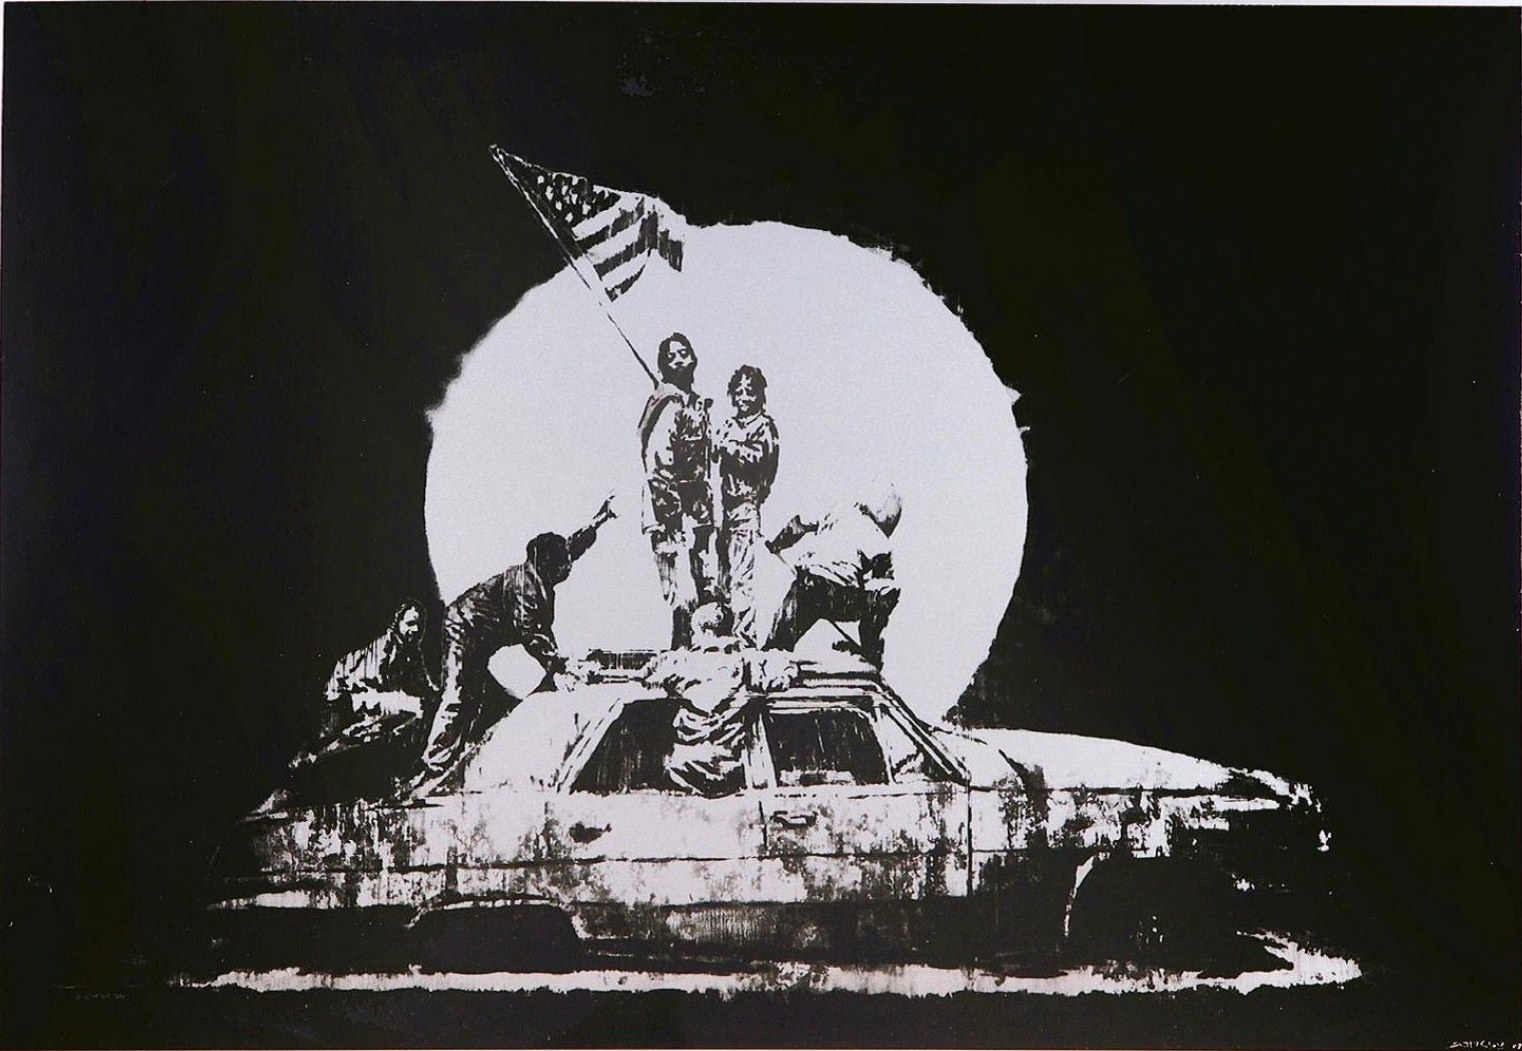 Banksy-Flag on Formica, Silver-2008